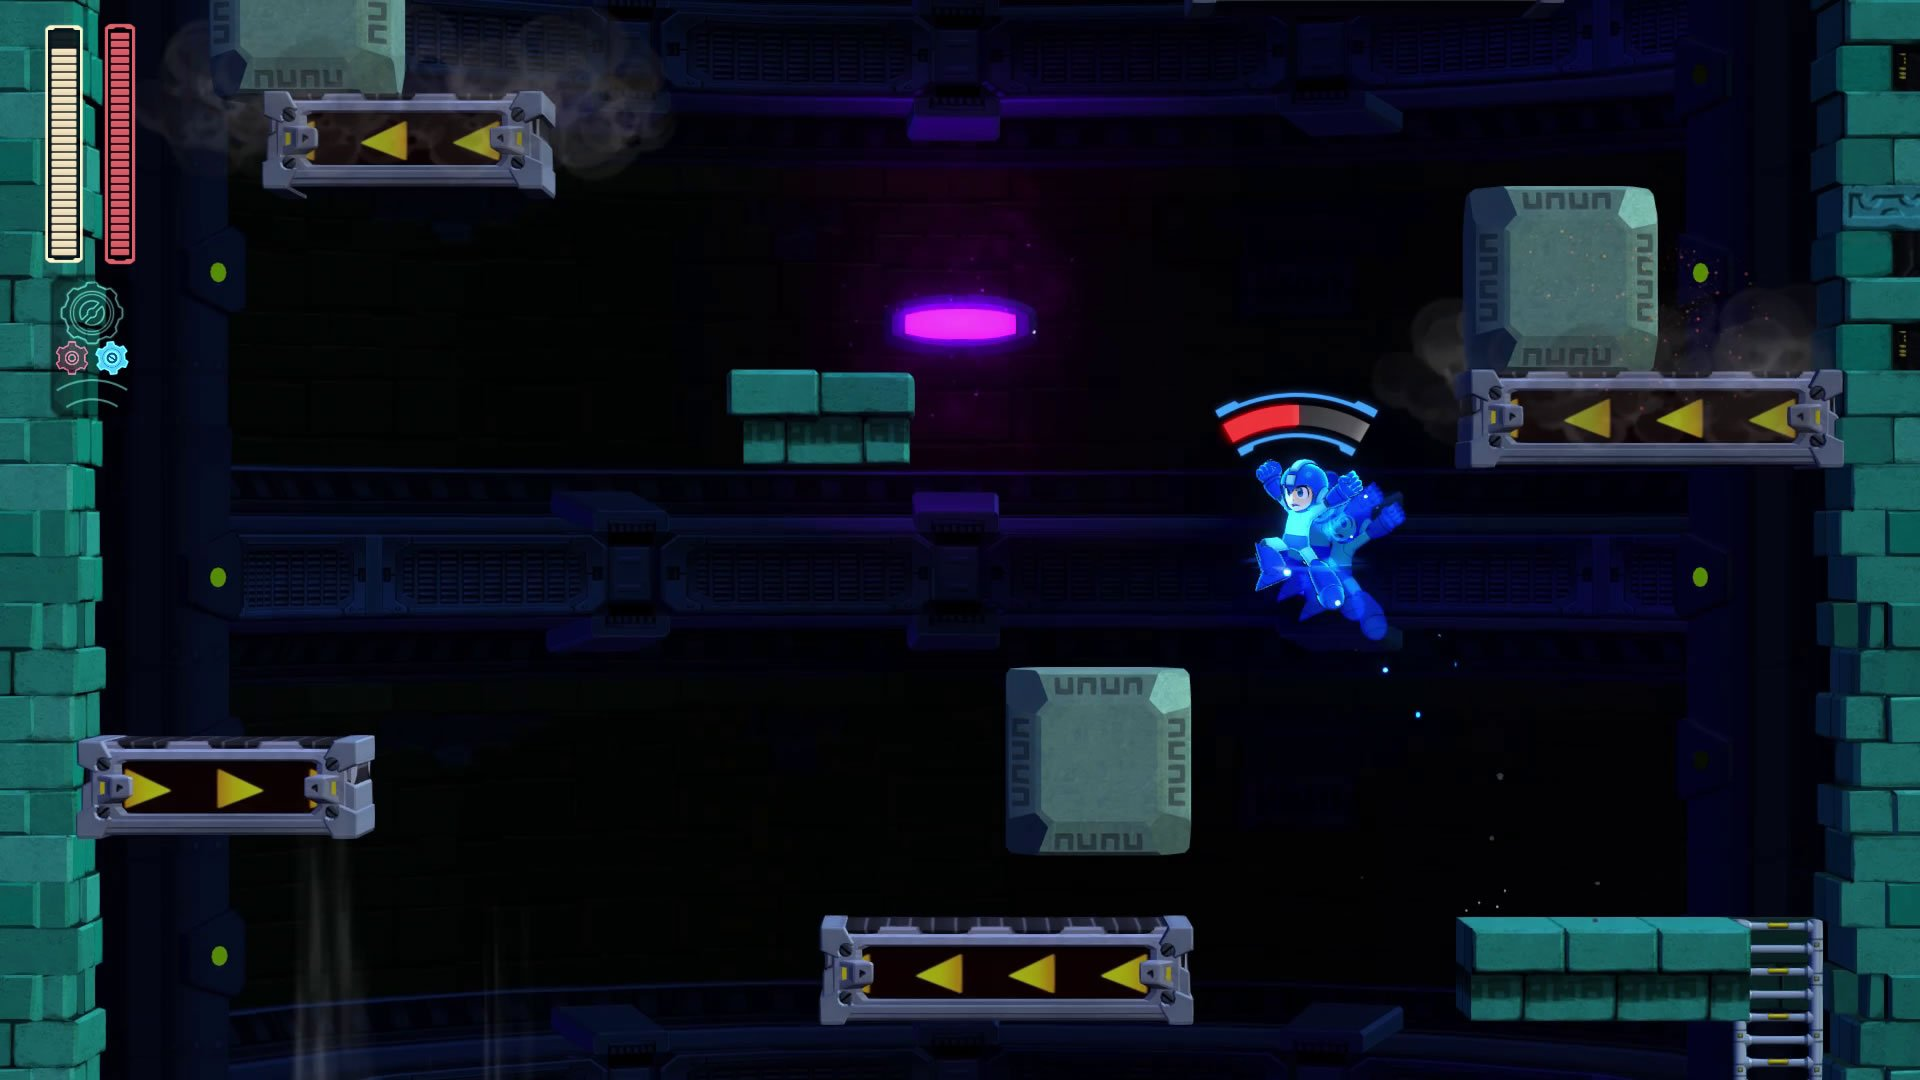 The Speed Gear makes for interesting new platforming challenges.